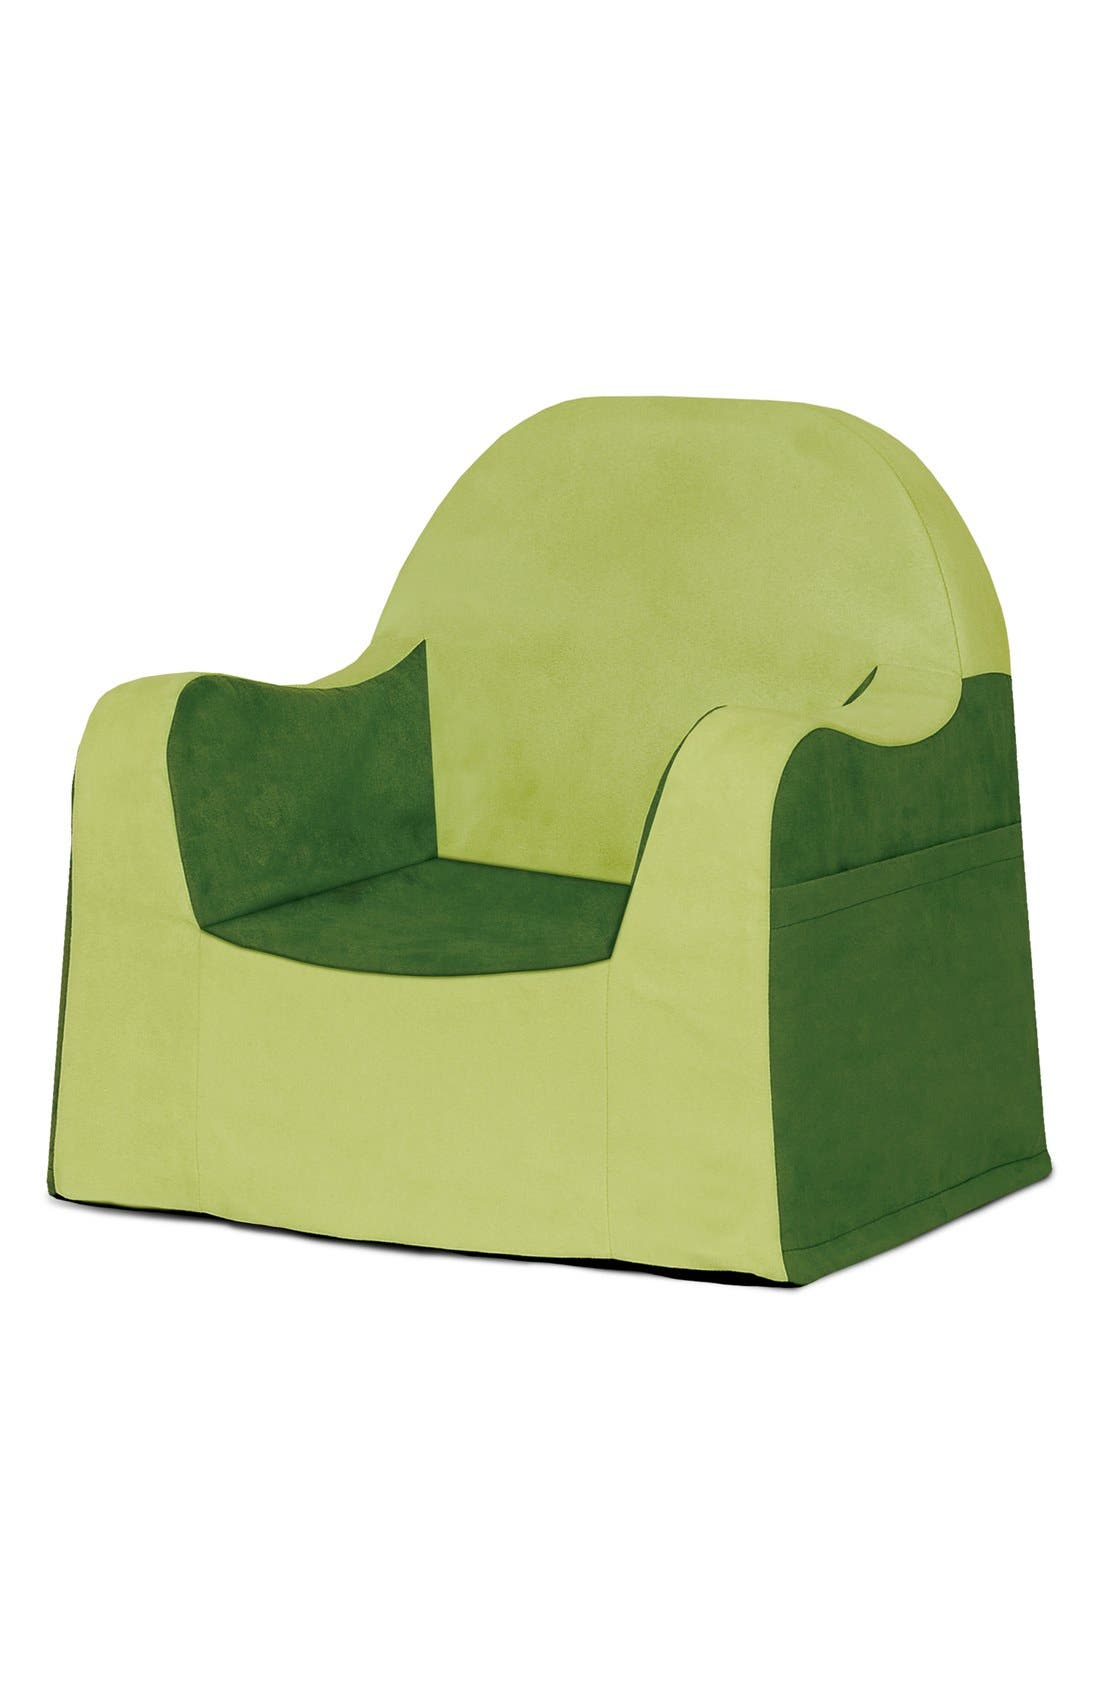 'Personalized Little Reader' Chair,                             Alternate thumbnail 5, color,                             GREEN